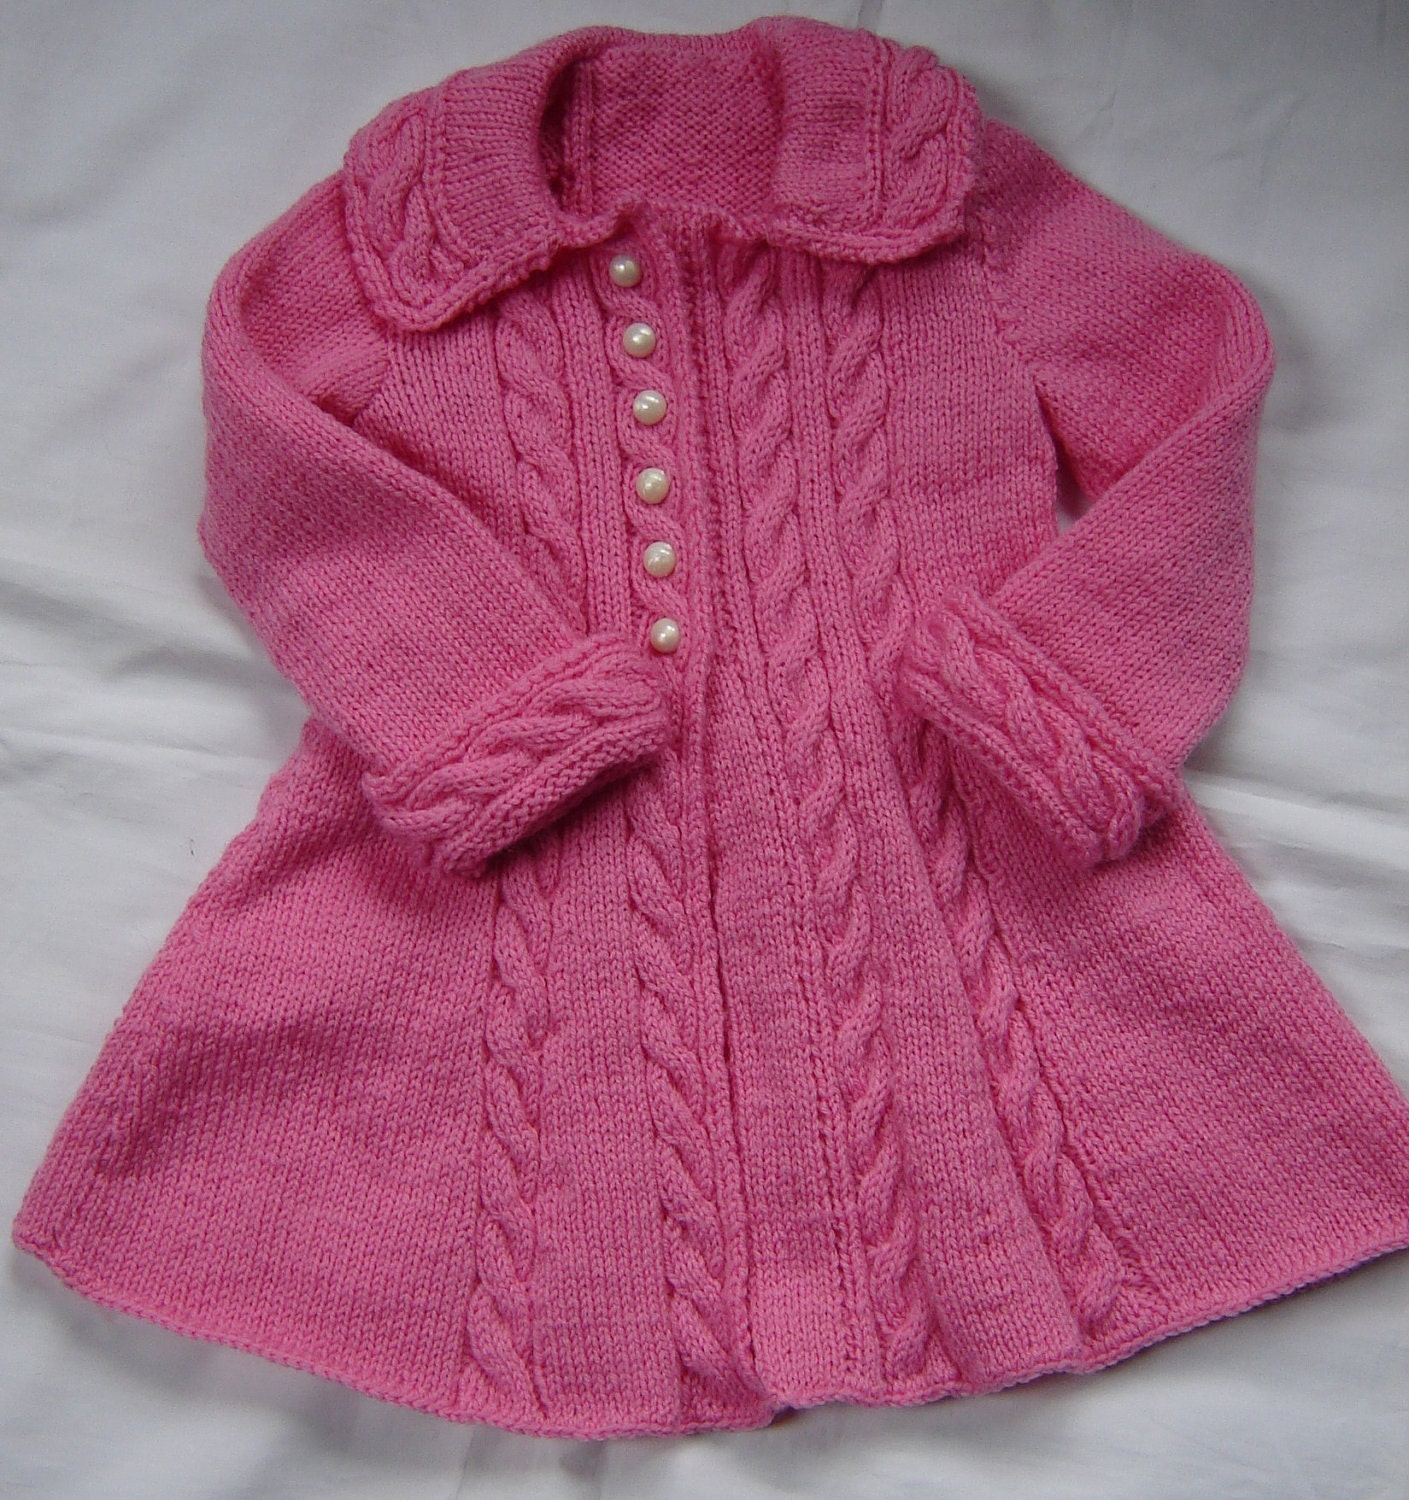 Free Knitting Patterns For Girls Sweaters : Sweater Pattern For Baby Girl - Long Sweater Jacket